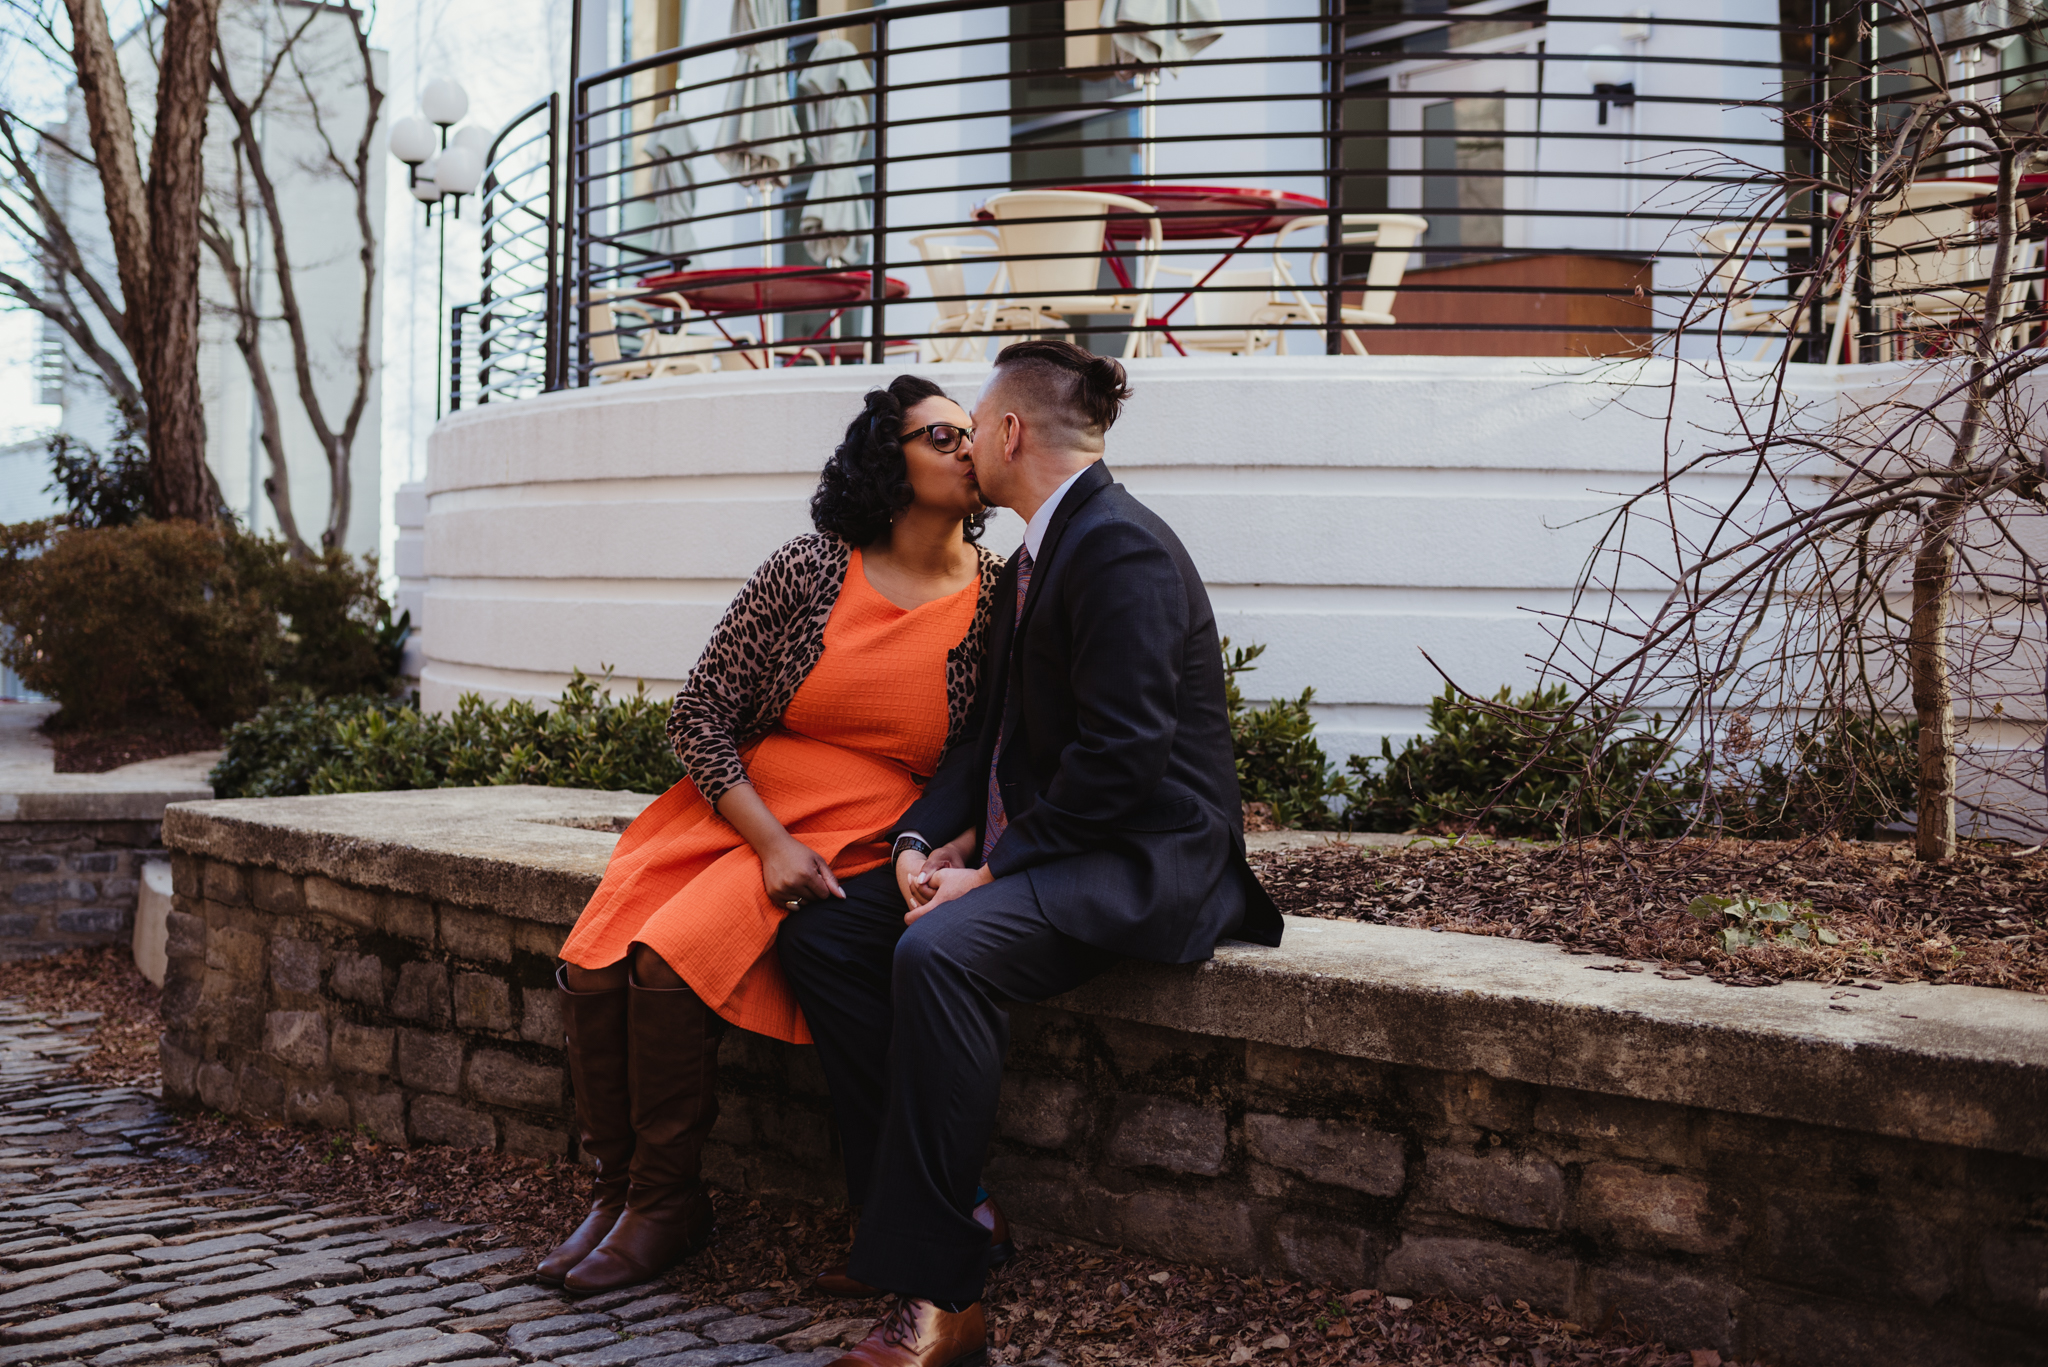 The husband and wife kiss outside of The Durham Hotel in Durham, North Carolina, image by Rose Trail Images.